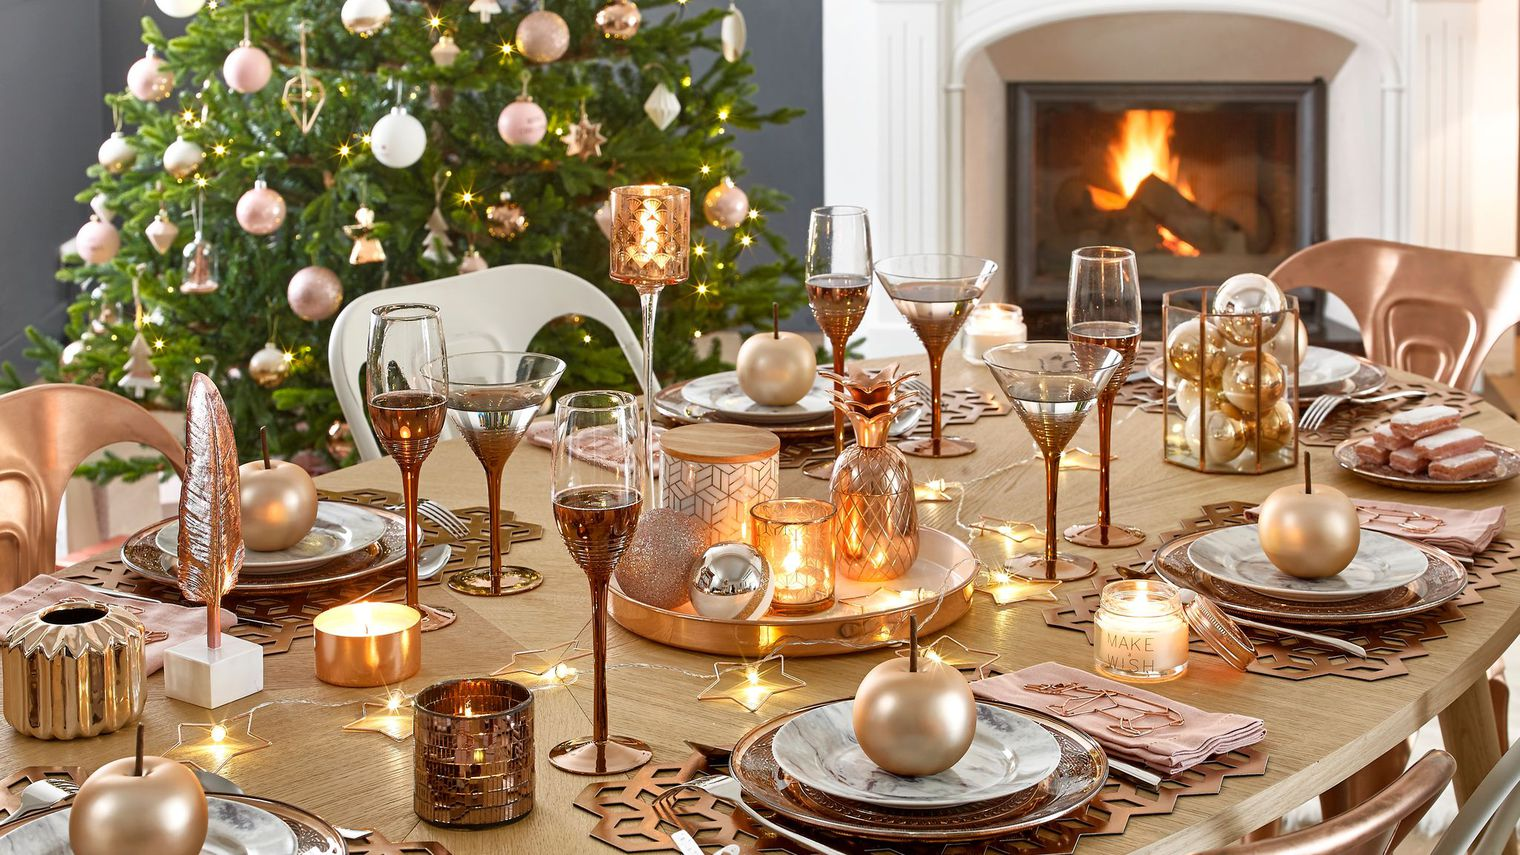 Une jolie d co pour no l justine huette cr atrice de - Deco tables de noel ...